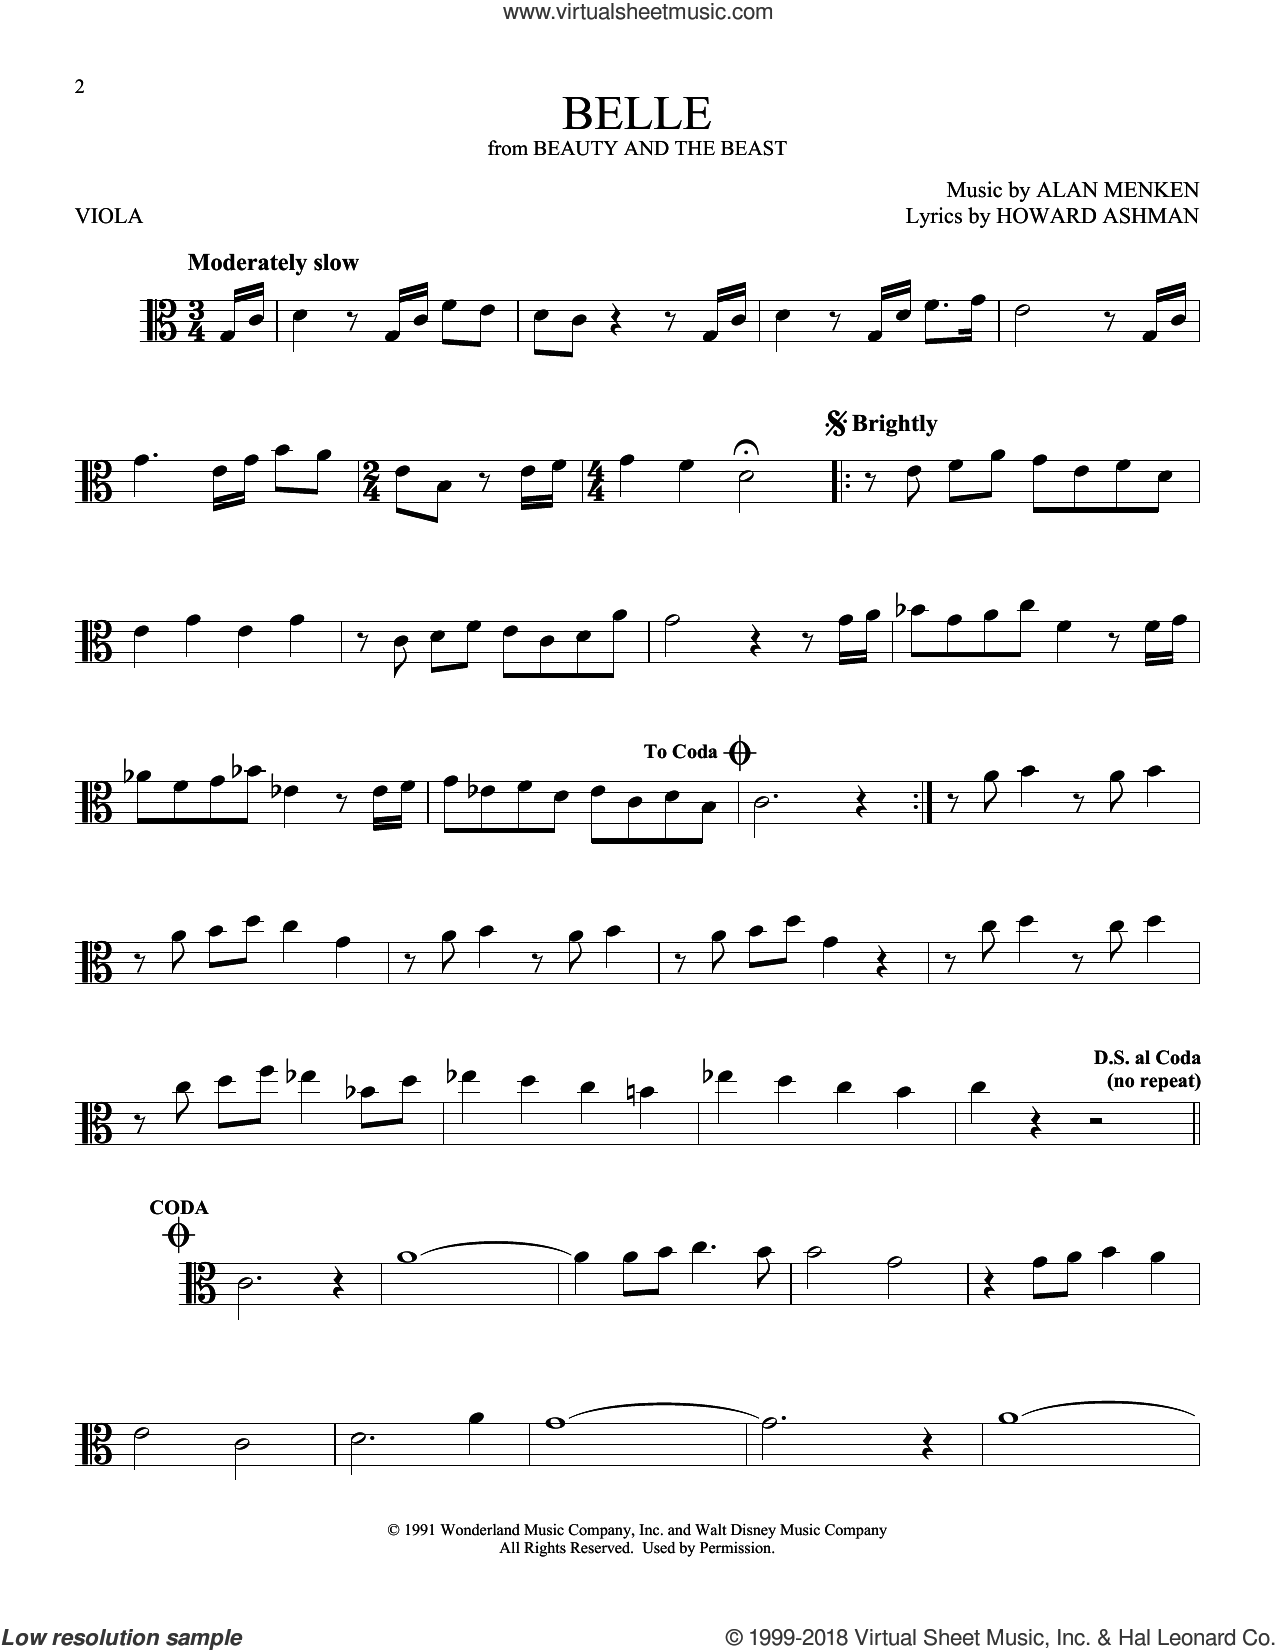 Belle (from Beauty And The Beast) sheet music for viola solo by Alan Menken and Howard Ashman, intermediate skill level